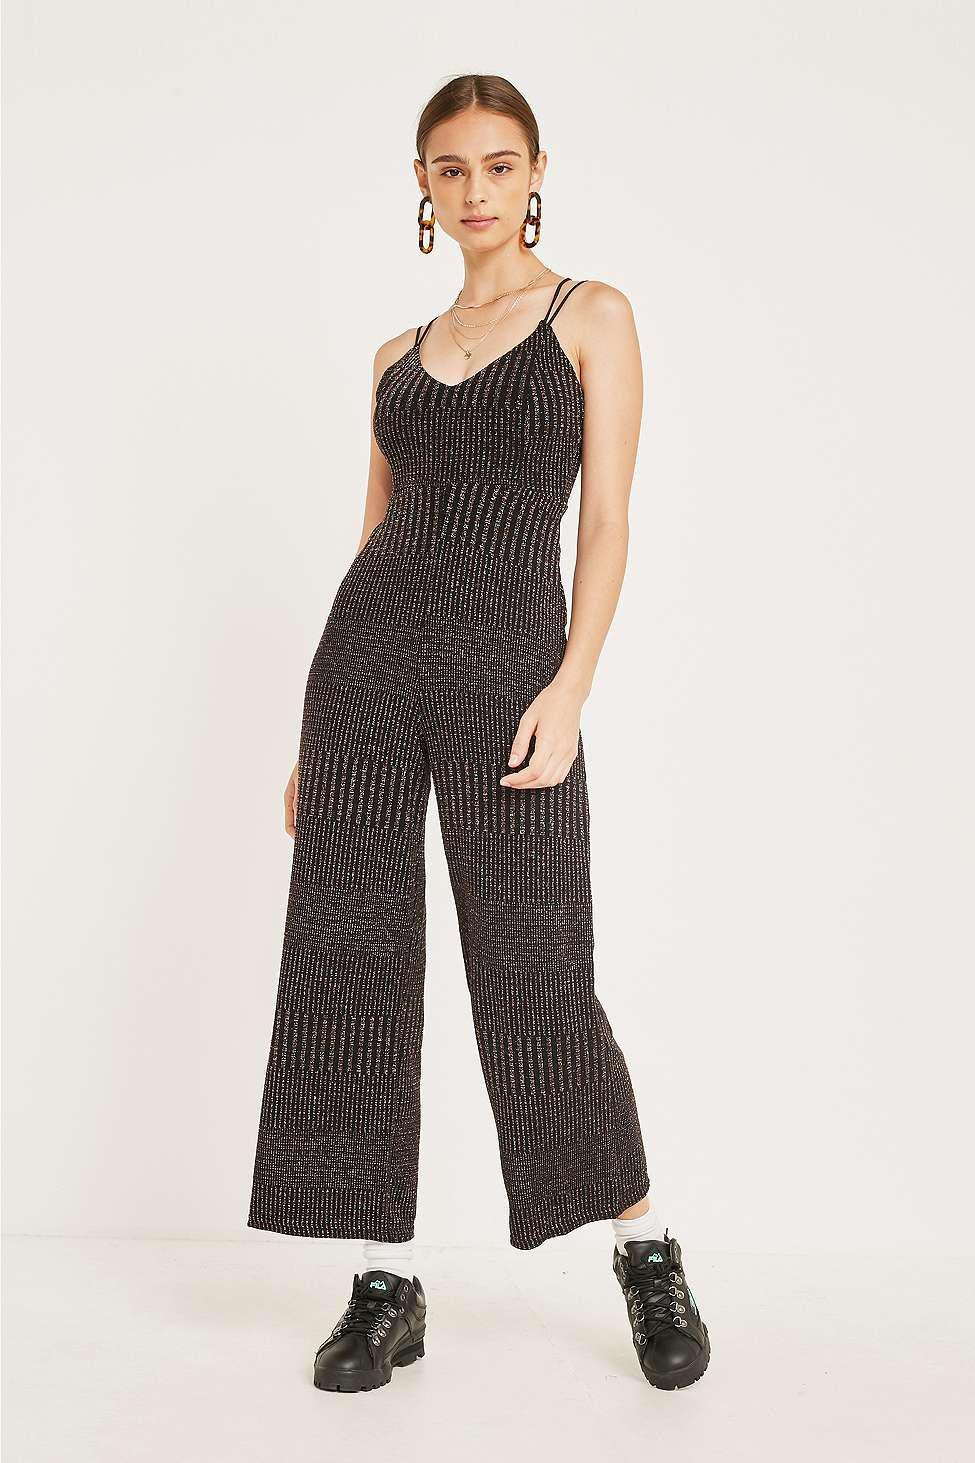 410382bb600a Urban outfitters designer black uo rainbow sparkle stripe strappy back  jumpsuit jpg 975x1463 Black jumpsuit urban